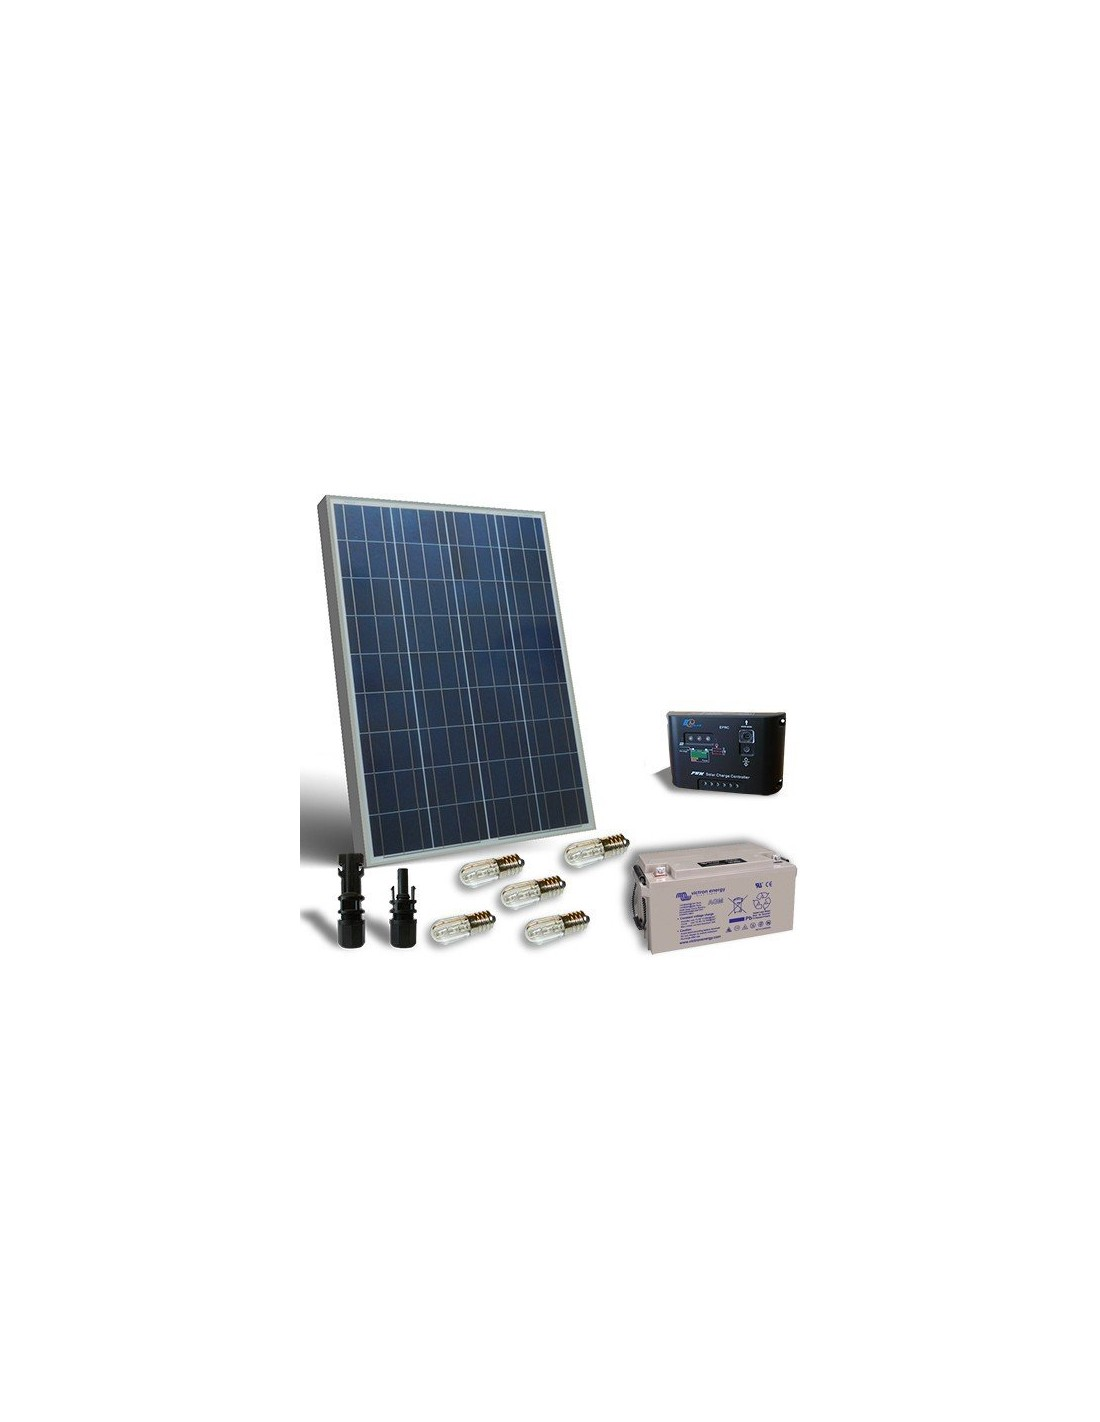 kit solaire votif 80w 12v panneau solaire regulateur de. Black Bedroom Furniture Sets. Home Design Ideas